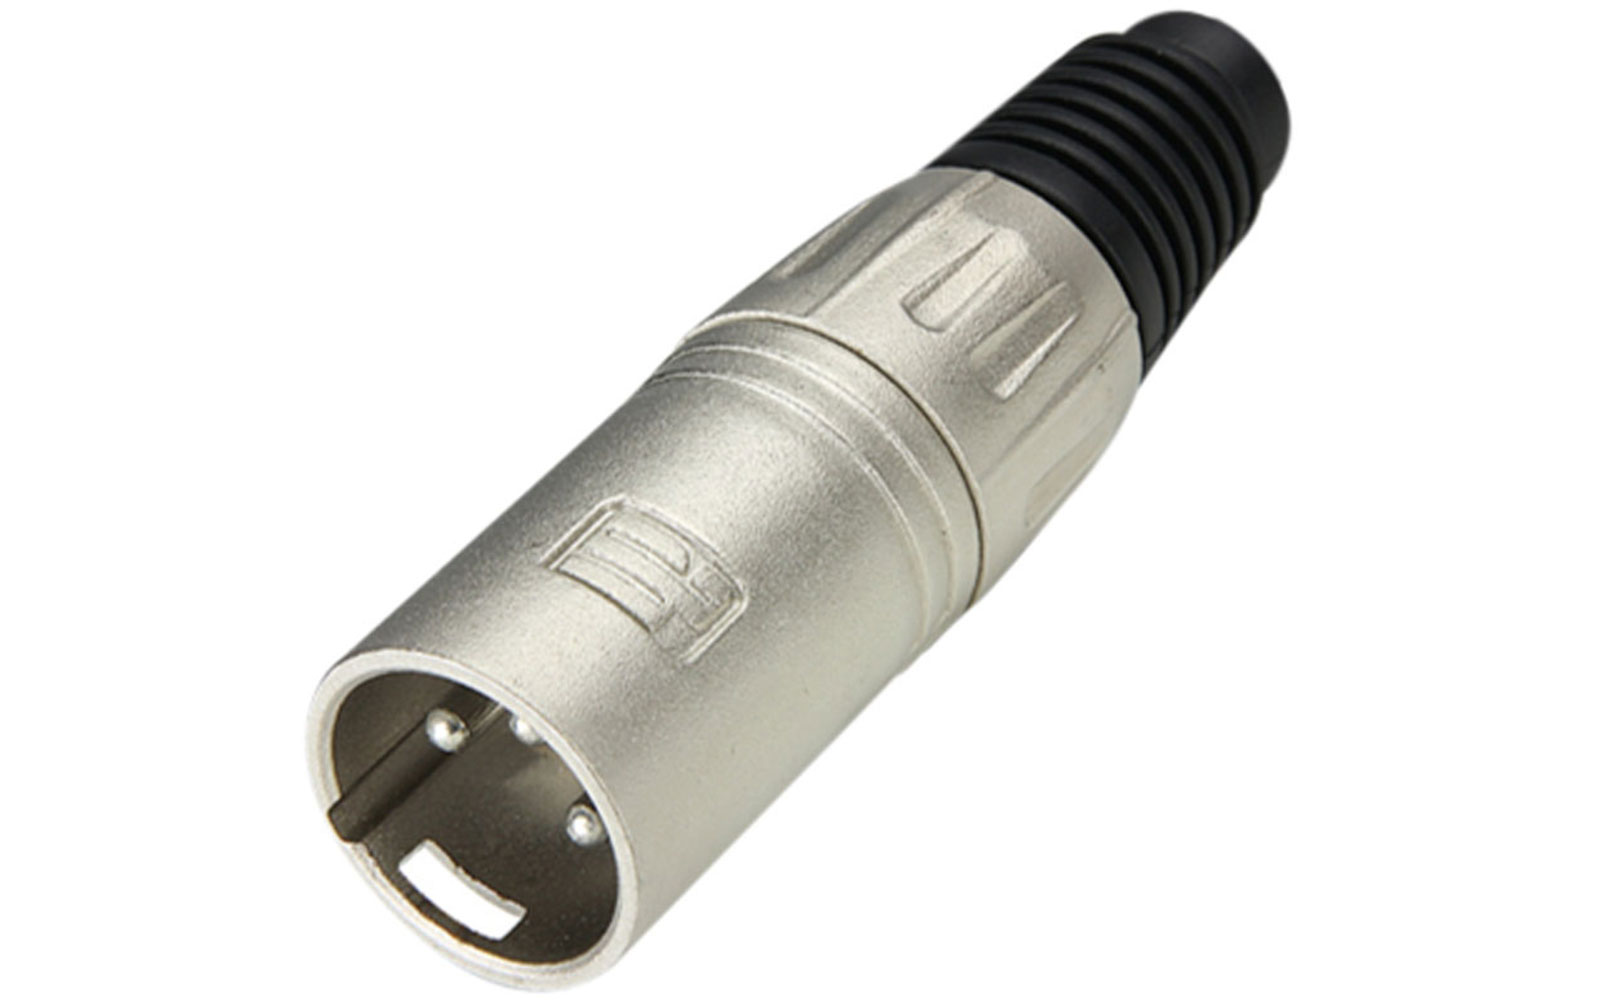 adam-hall-7899-xlr-stecker-male-silber